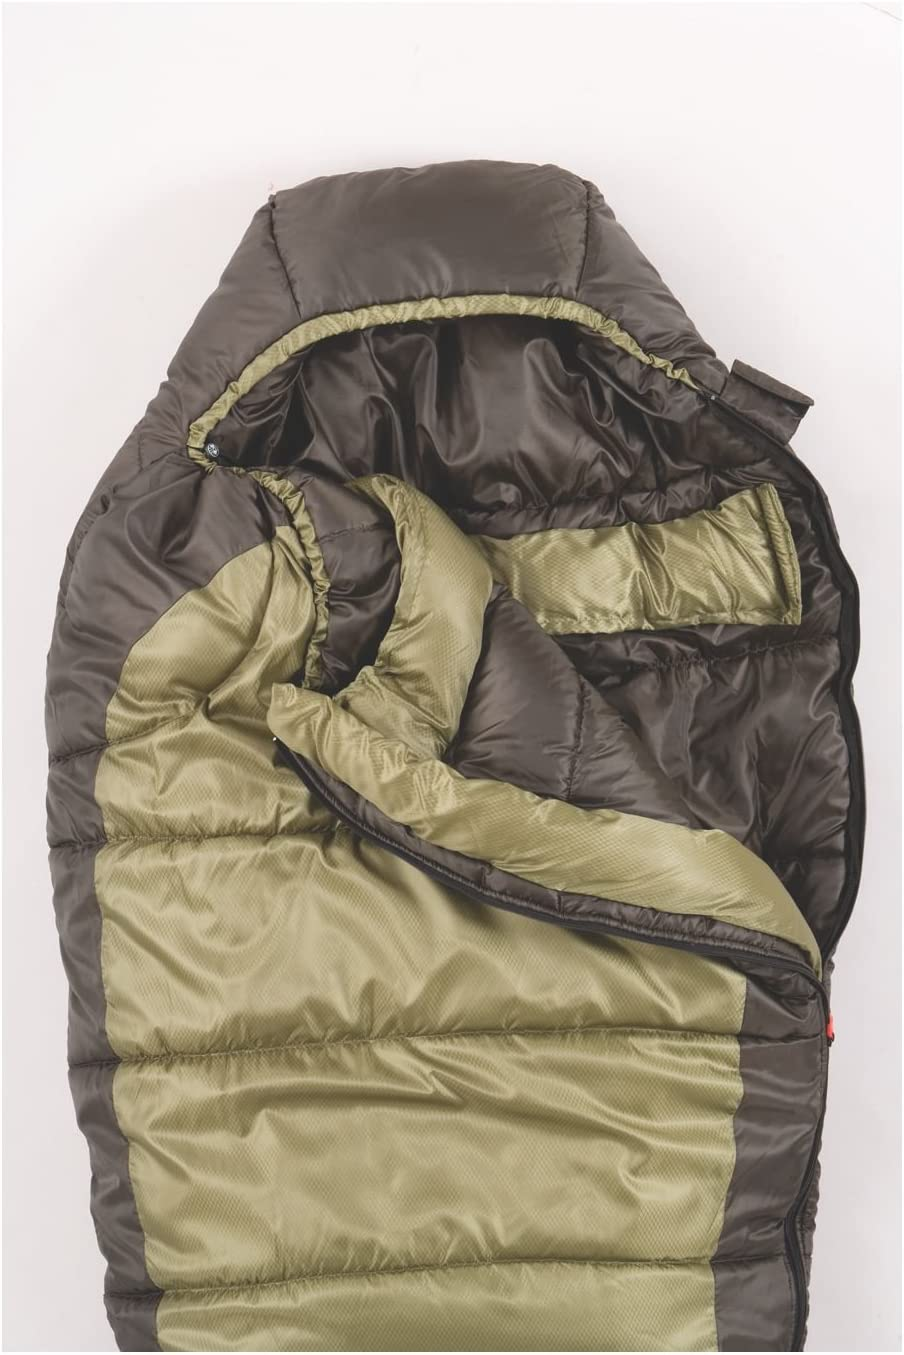 Coleman 0 F Mummy Sleeping Bag for Big and Tall Adults North Rim Cold-Weather Sleeping Bag, Olive